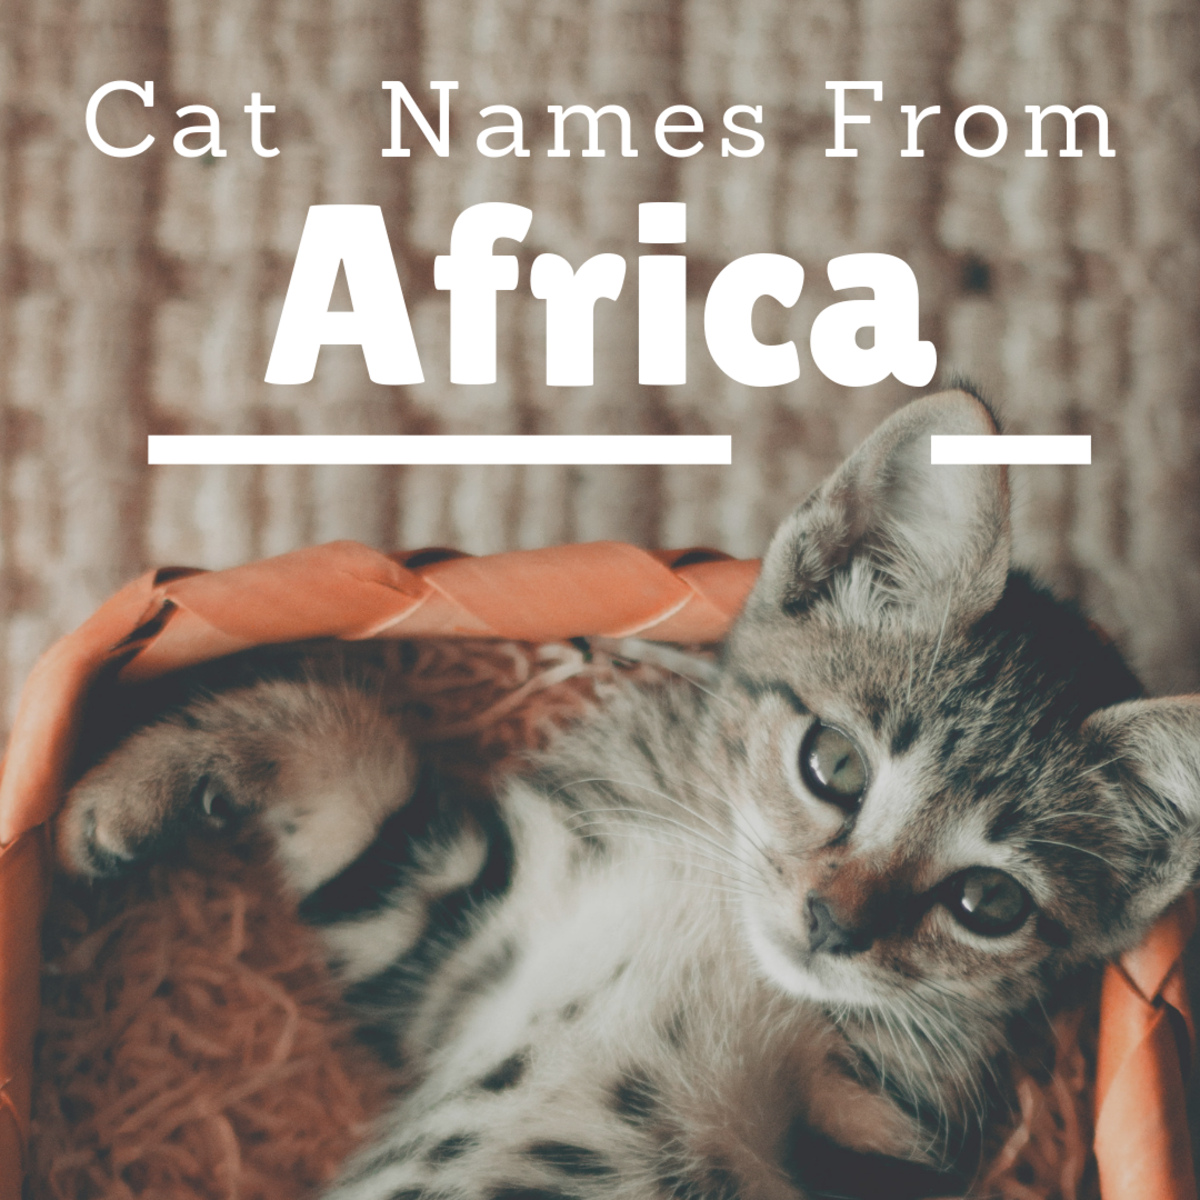 Cat Names From Africa